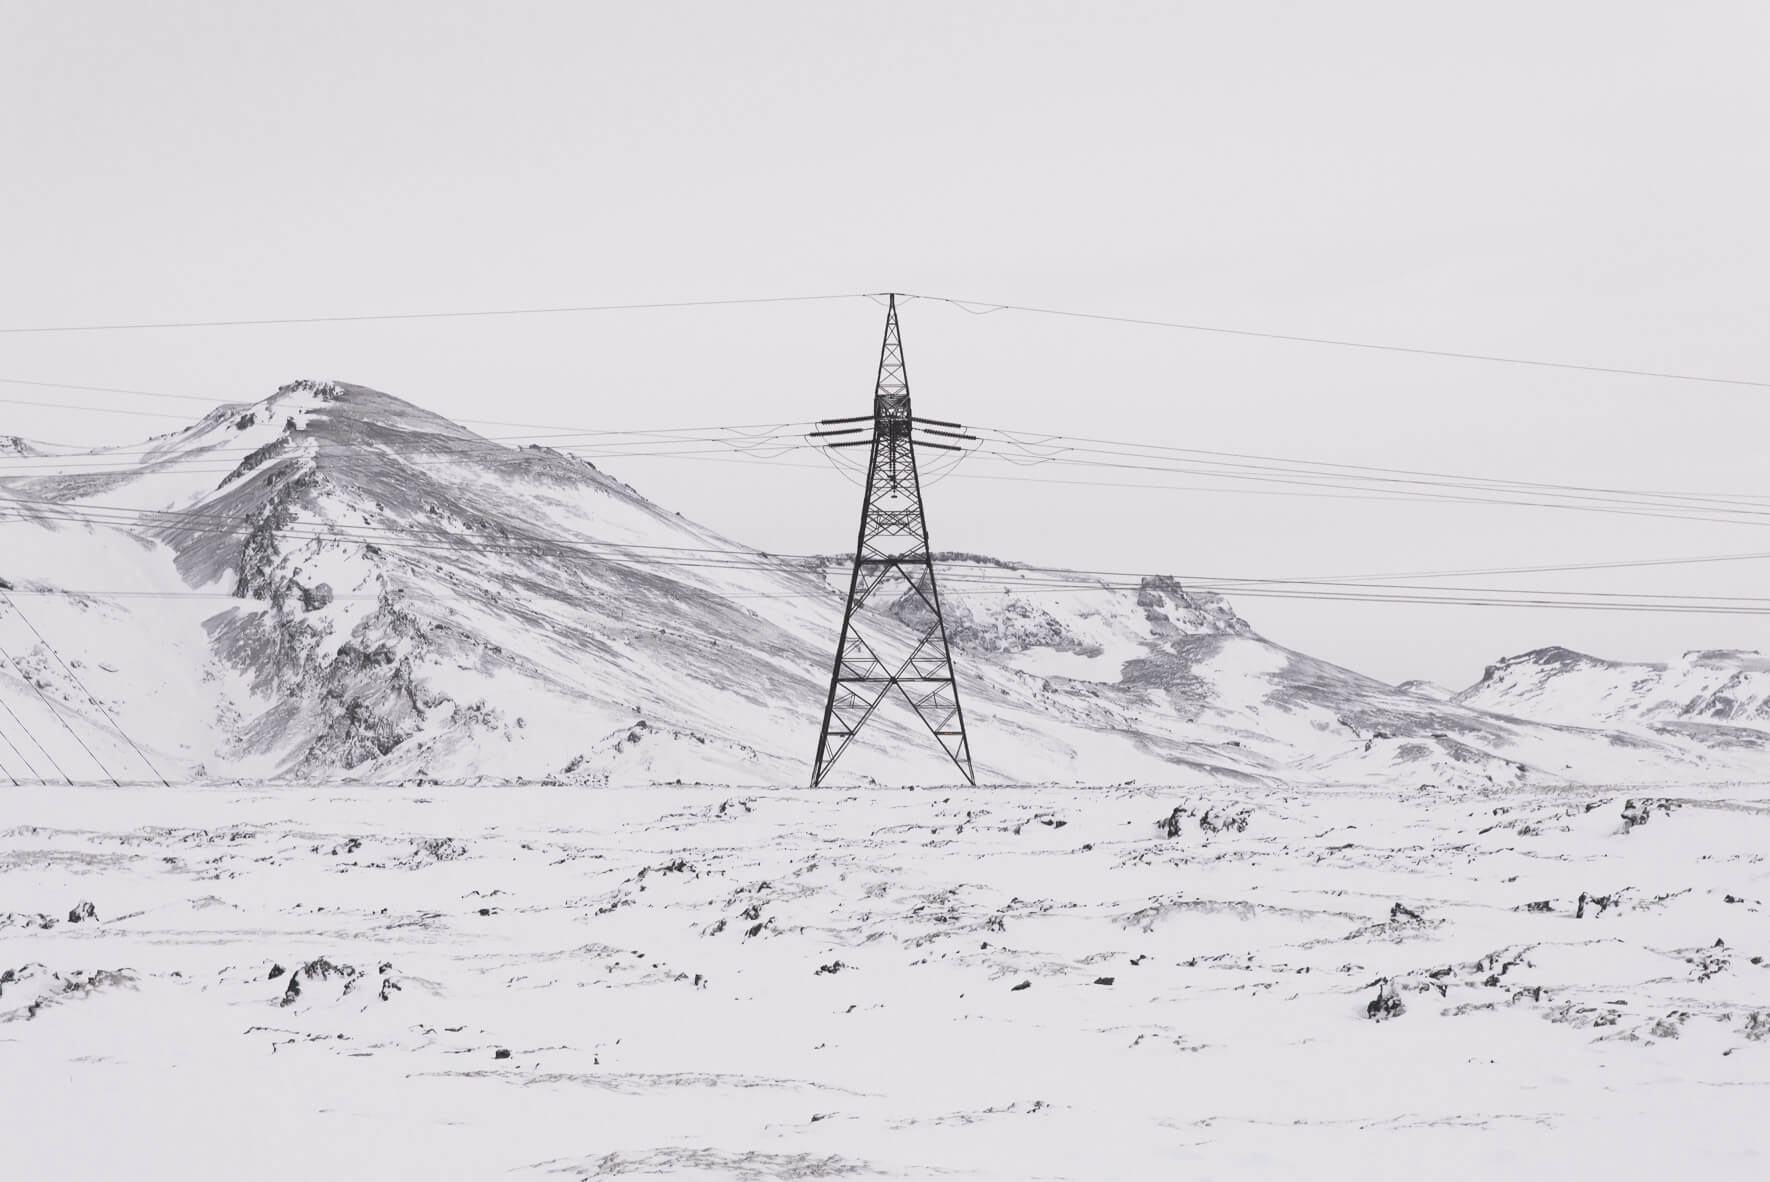 High voltage power line in winter landscape in Iceland